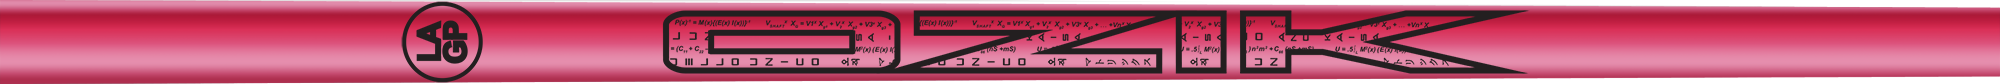 Ozik White Tie: Neon Pink Black Gloss - Wood 50 R